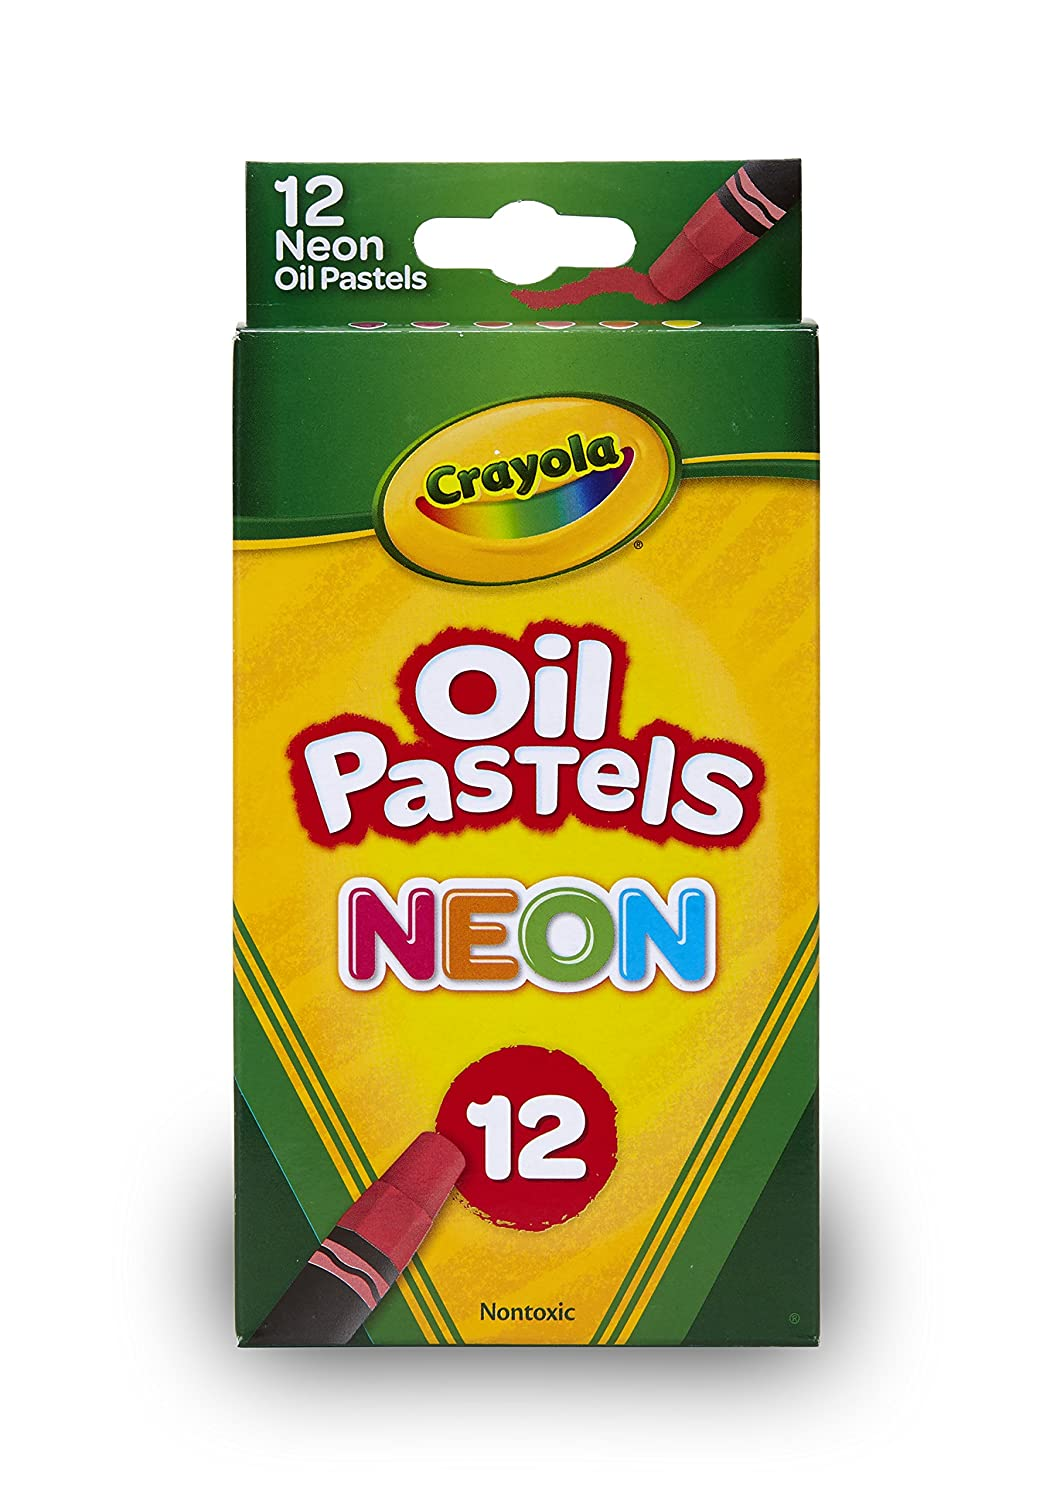 Crayola Oil Pastel Set with Decorative Case, Water-Soluble, Great for Watercolor Effects, 24 Colors Binney & Smith 52-4624